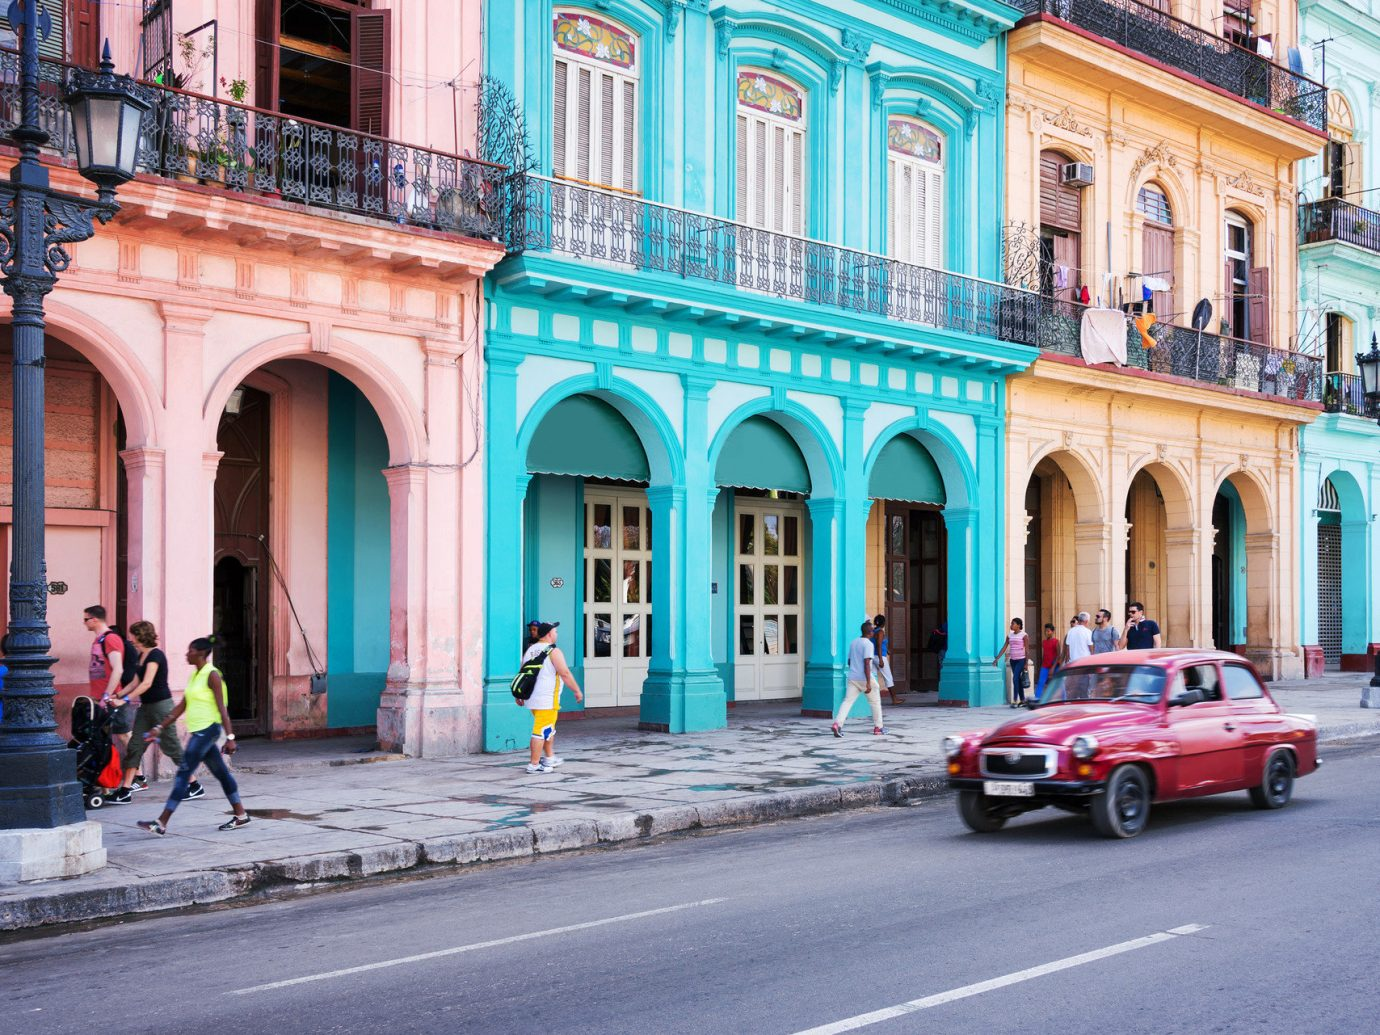 Trip Ideas building road outdoor street landmark Town City urban area Architecture neighbourhood human settlement tourism Downtown facade infrastructure travel palace town square cityscape plaza arch old way past stone scooter colonnade